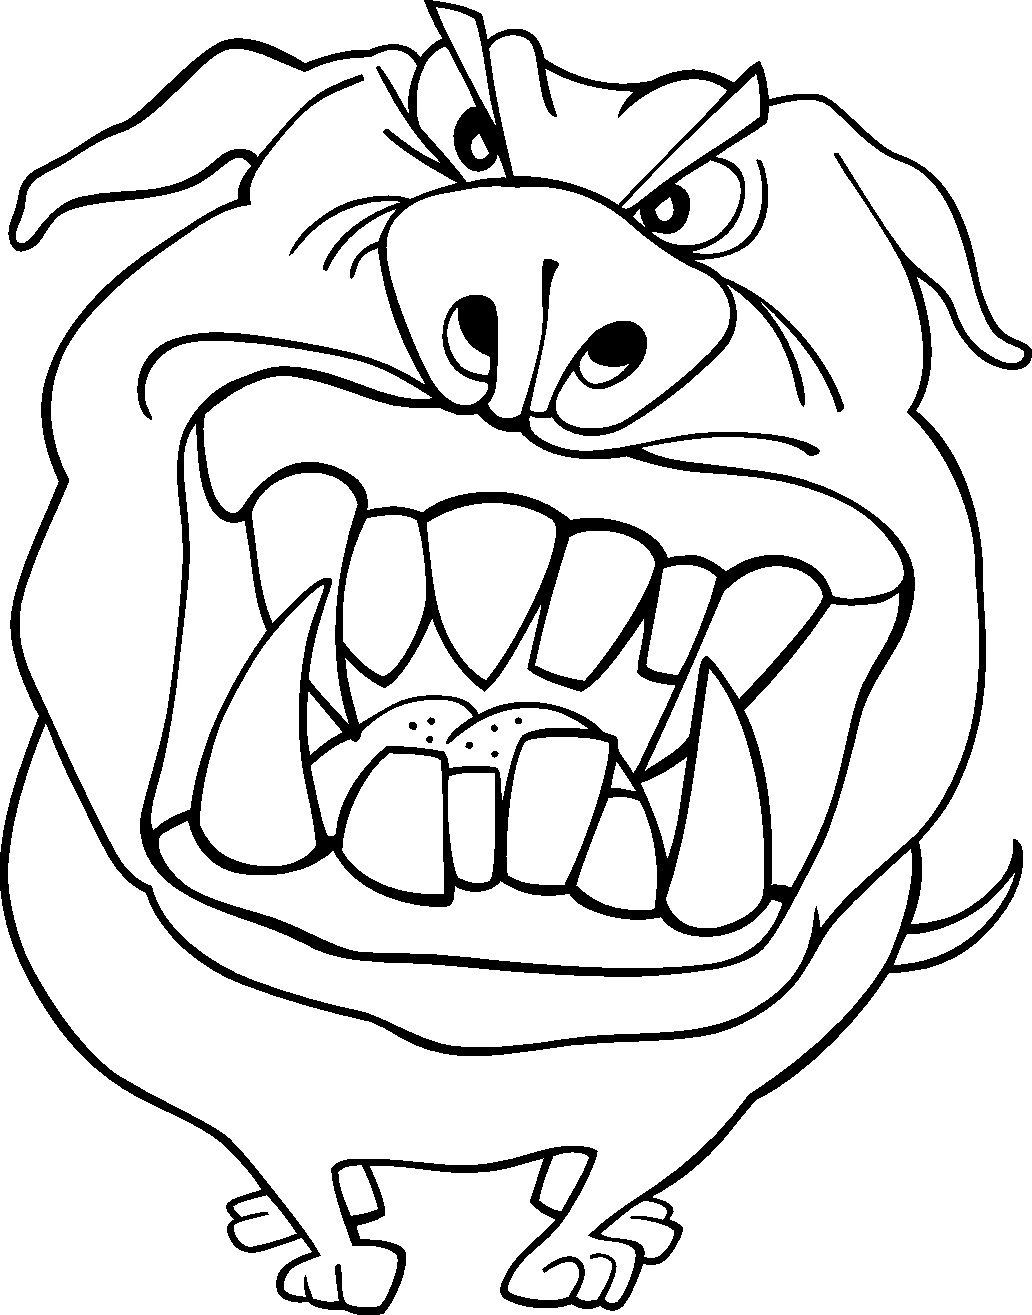 Free Printable Funny Coloring Pages For Kids Childrens Printable Coloring Pages